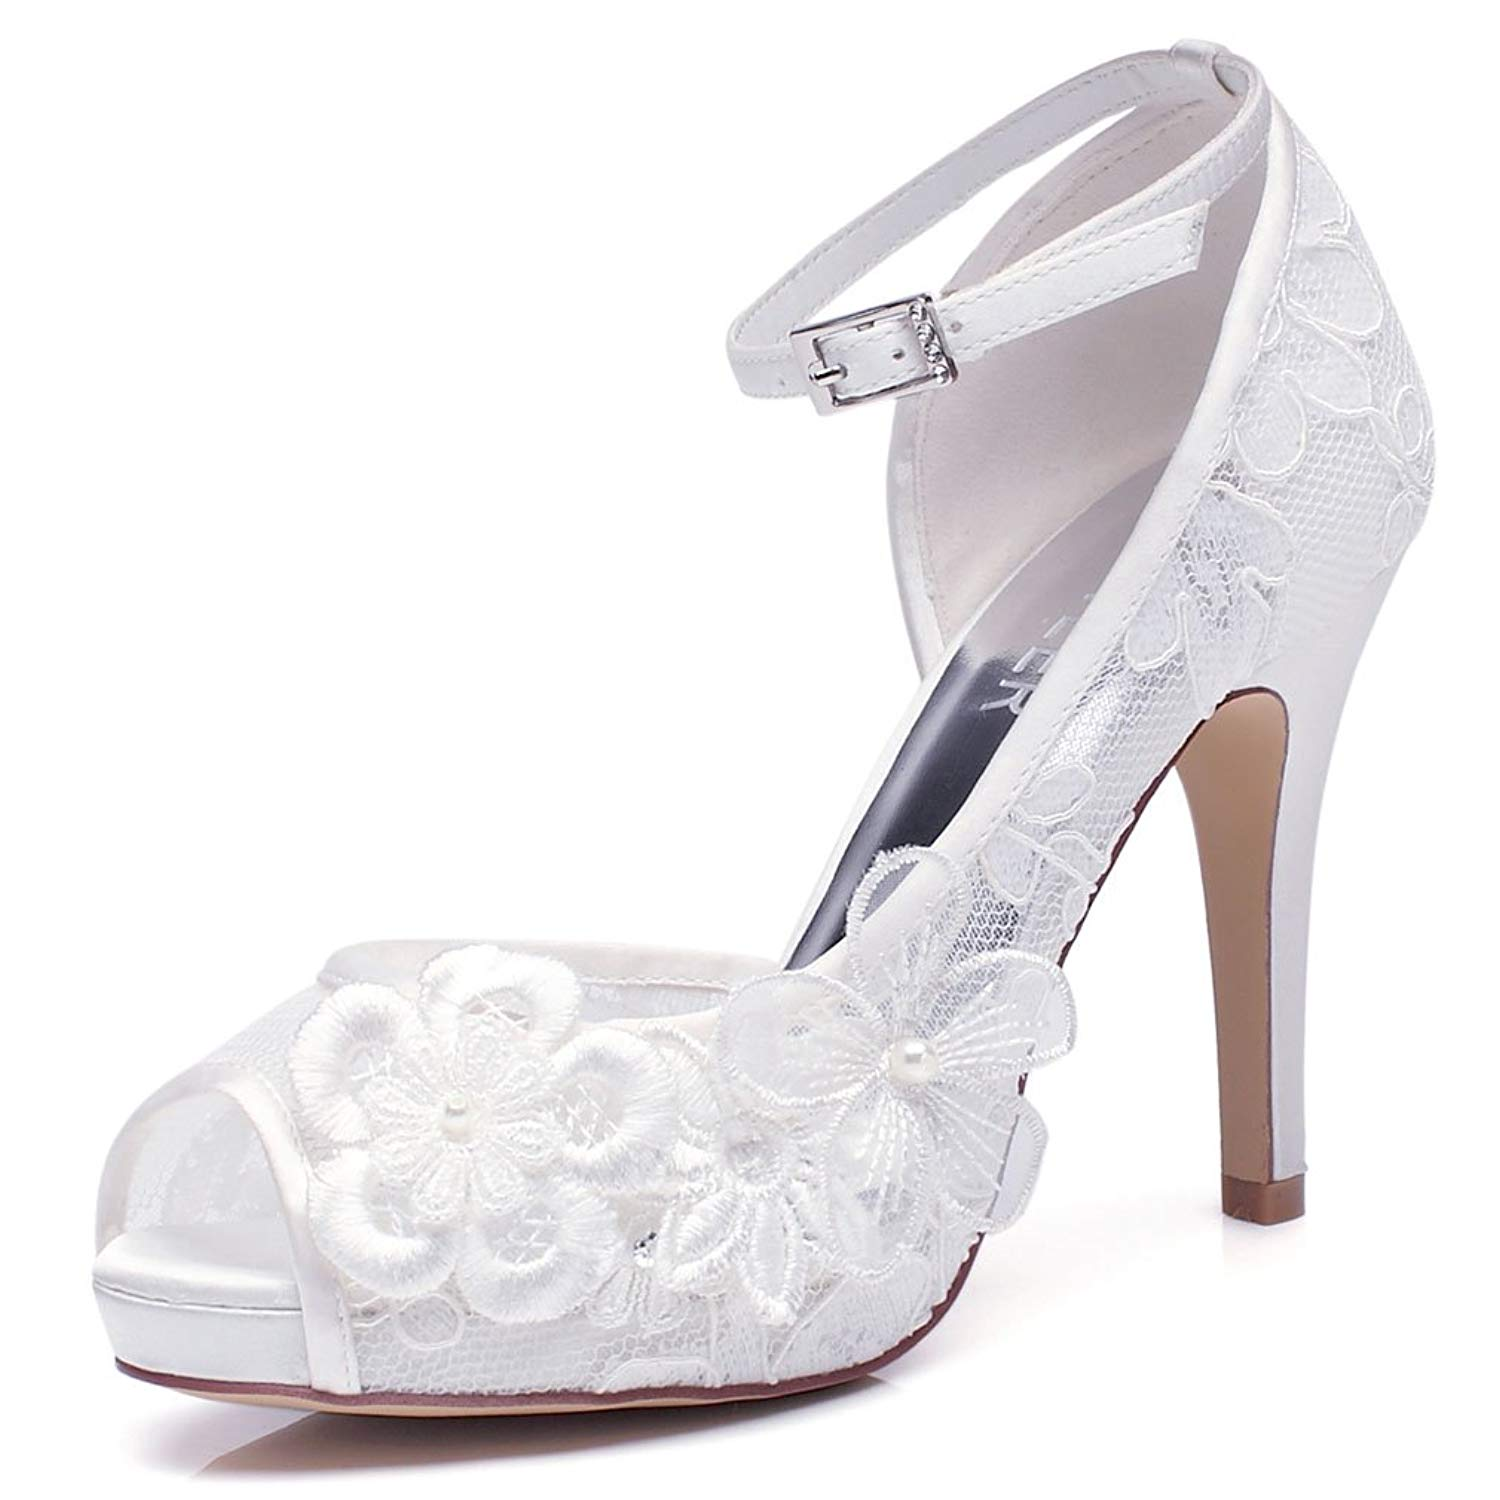 LUXVEER White Lace Wedding Shoes for Bridal with Floral Brooches Medium Heel-4inch-Peep Toe